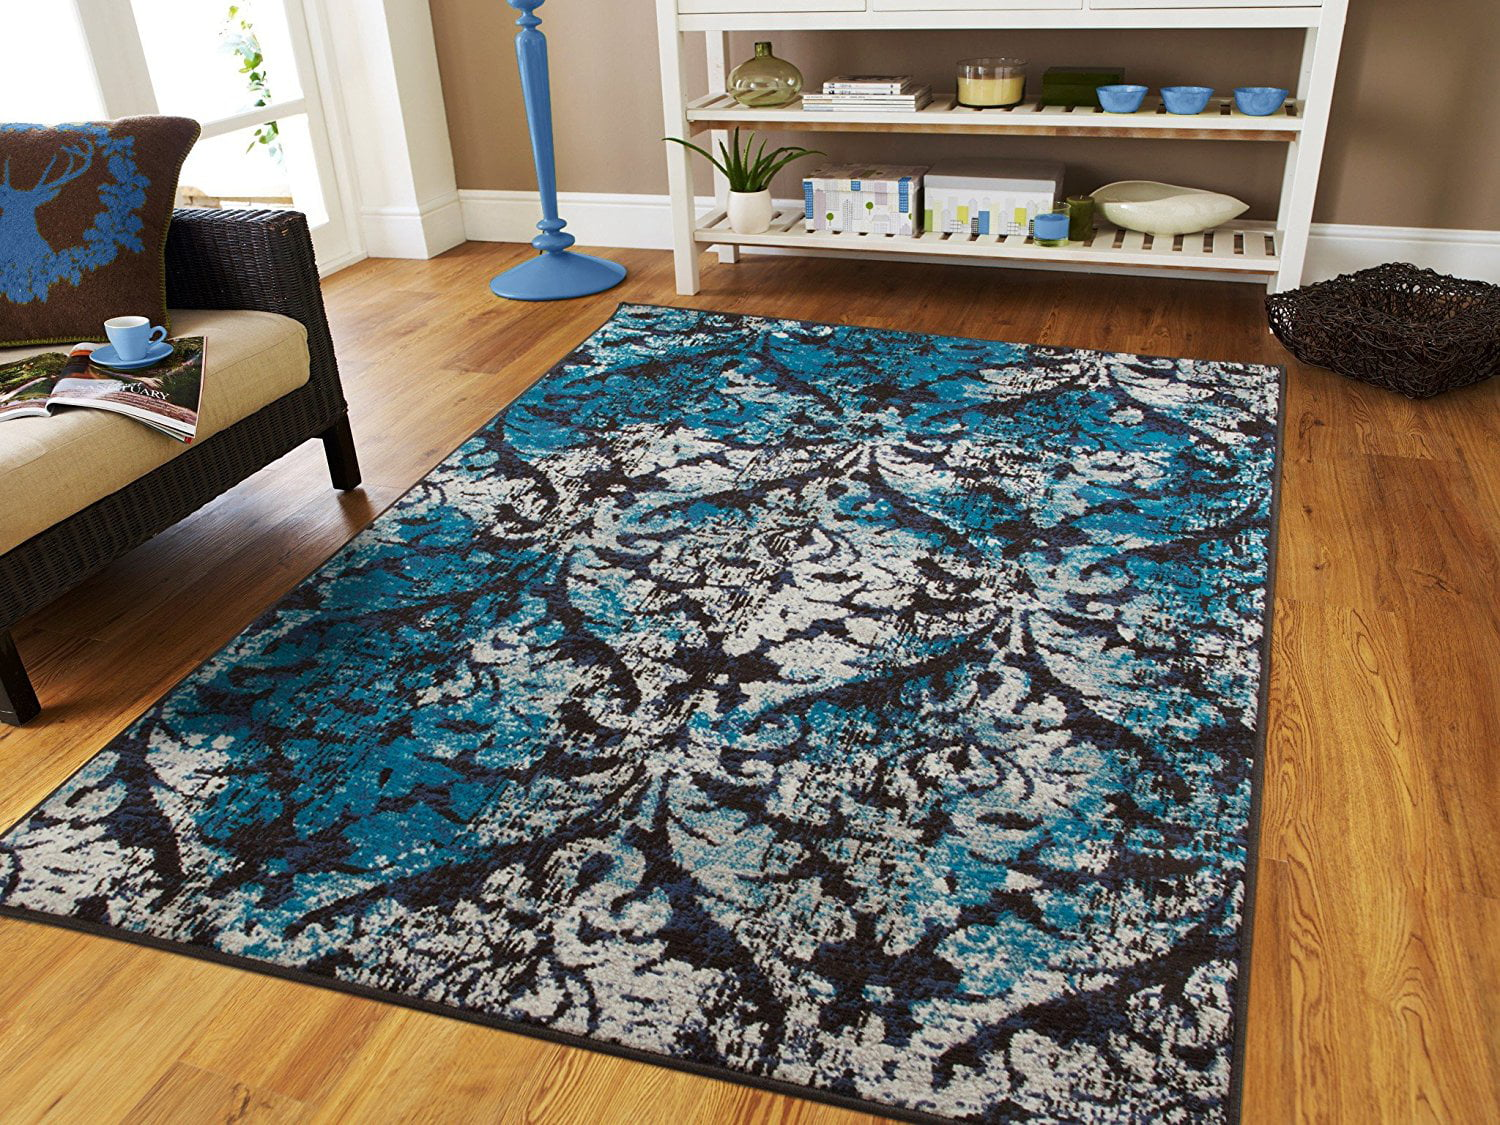 5x7 Rugs Under 50.Luxury Modern Area Rugs5x8 Distressed Rugs 5x7 Rug For Dining Room Blue Black Gray Floor 5 By 7 Area Rugs Under 50 Blue Rugs For Living Room